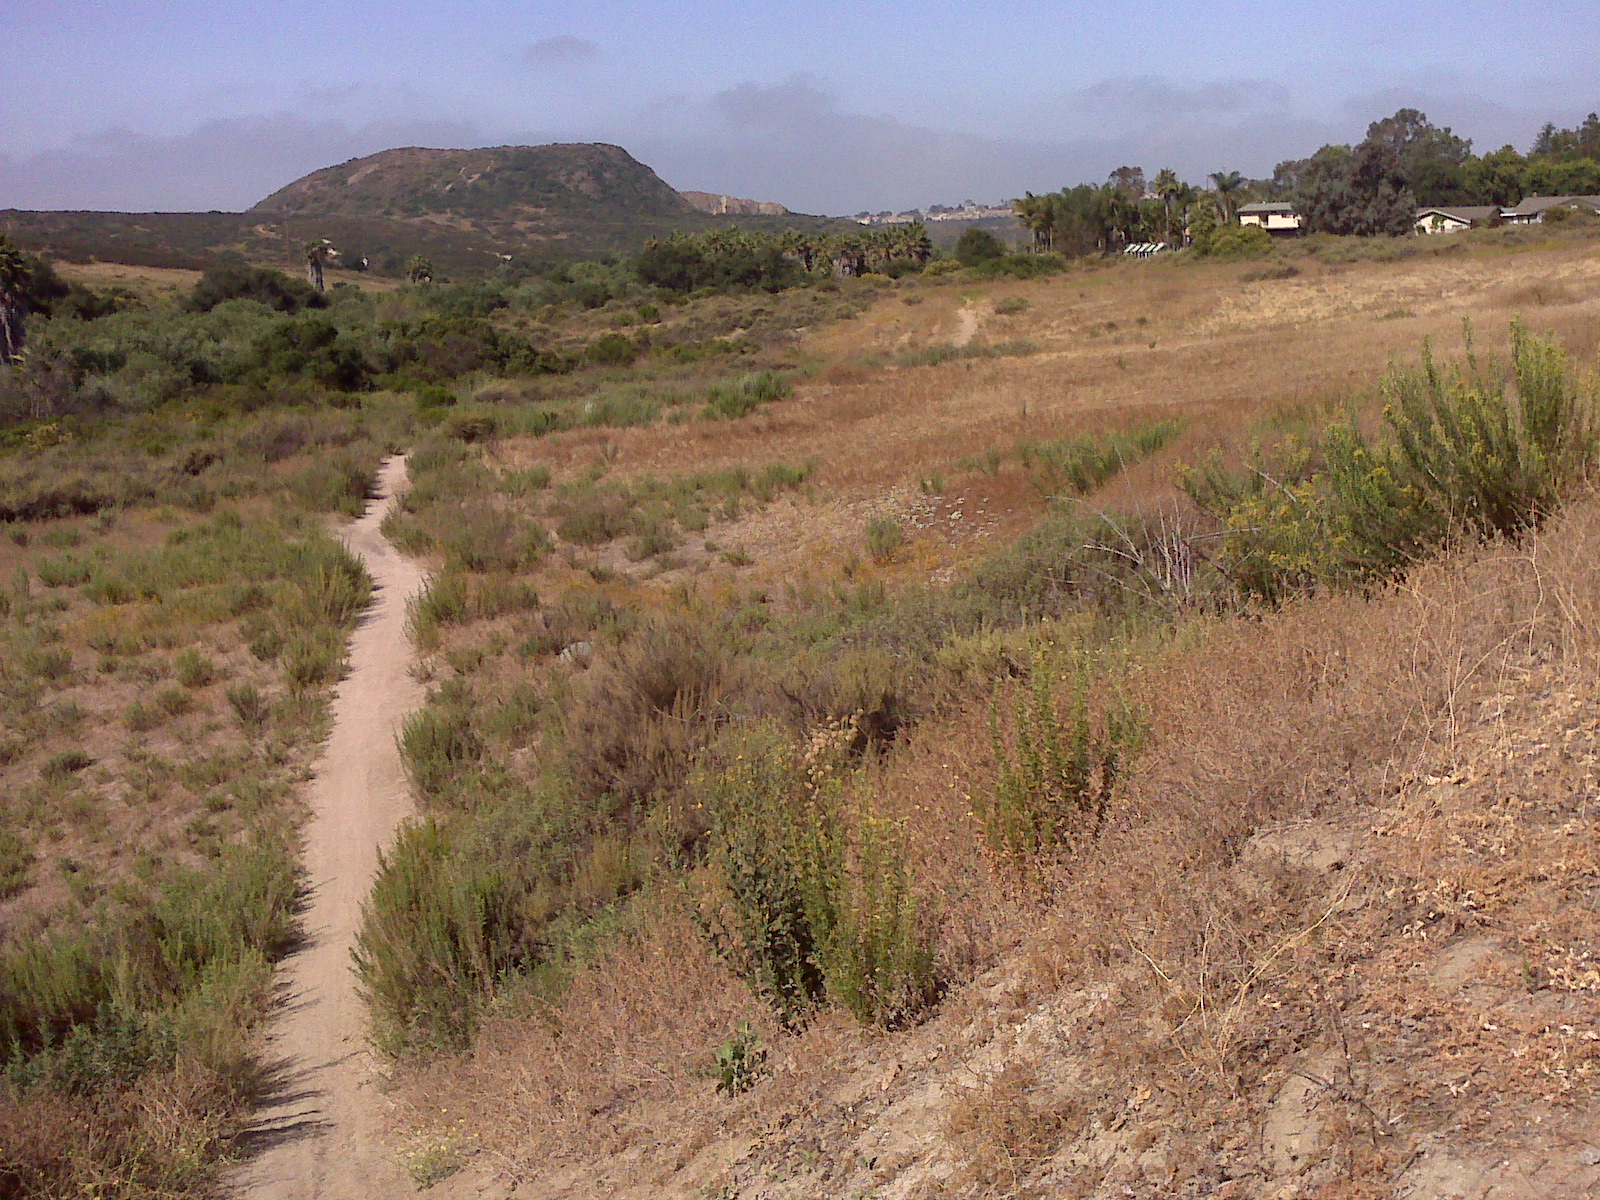 Lack of respect  earns hikers moniker of 'Trail Jerks'